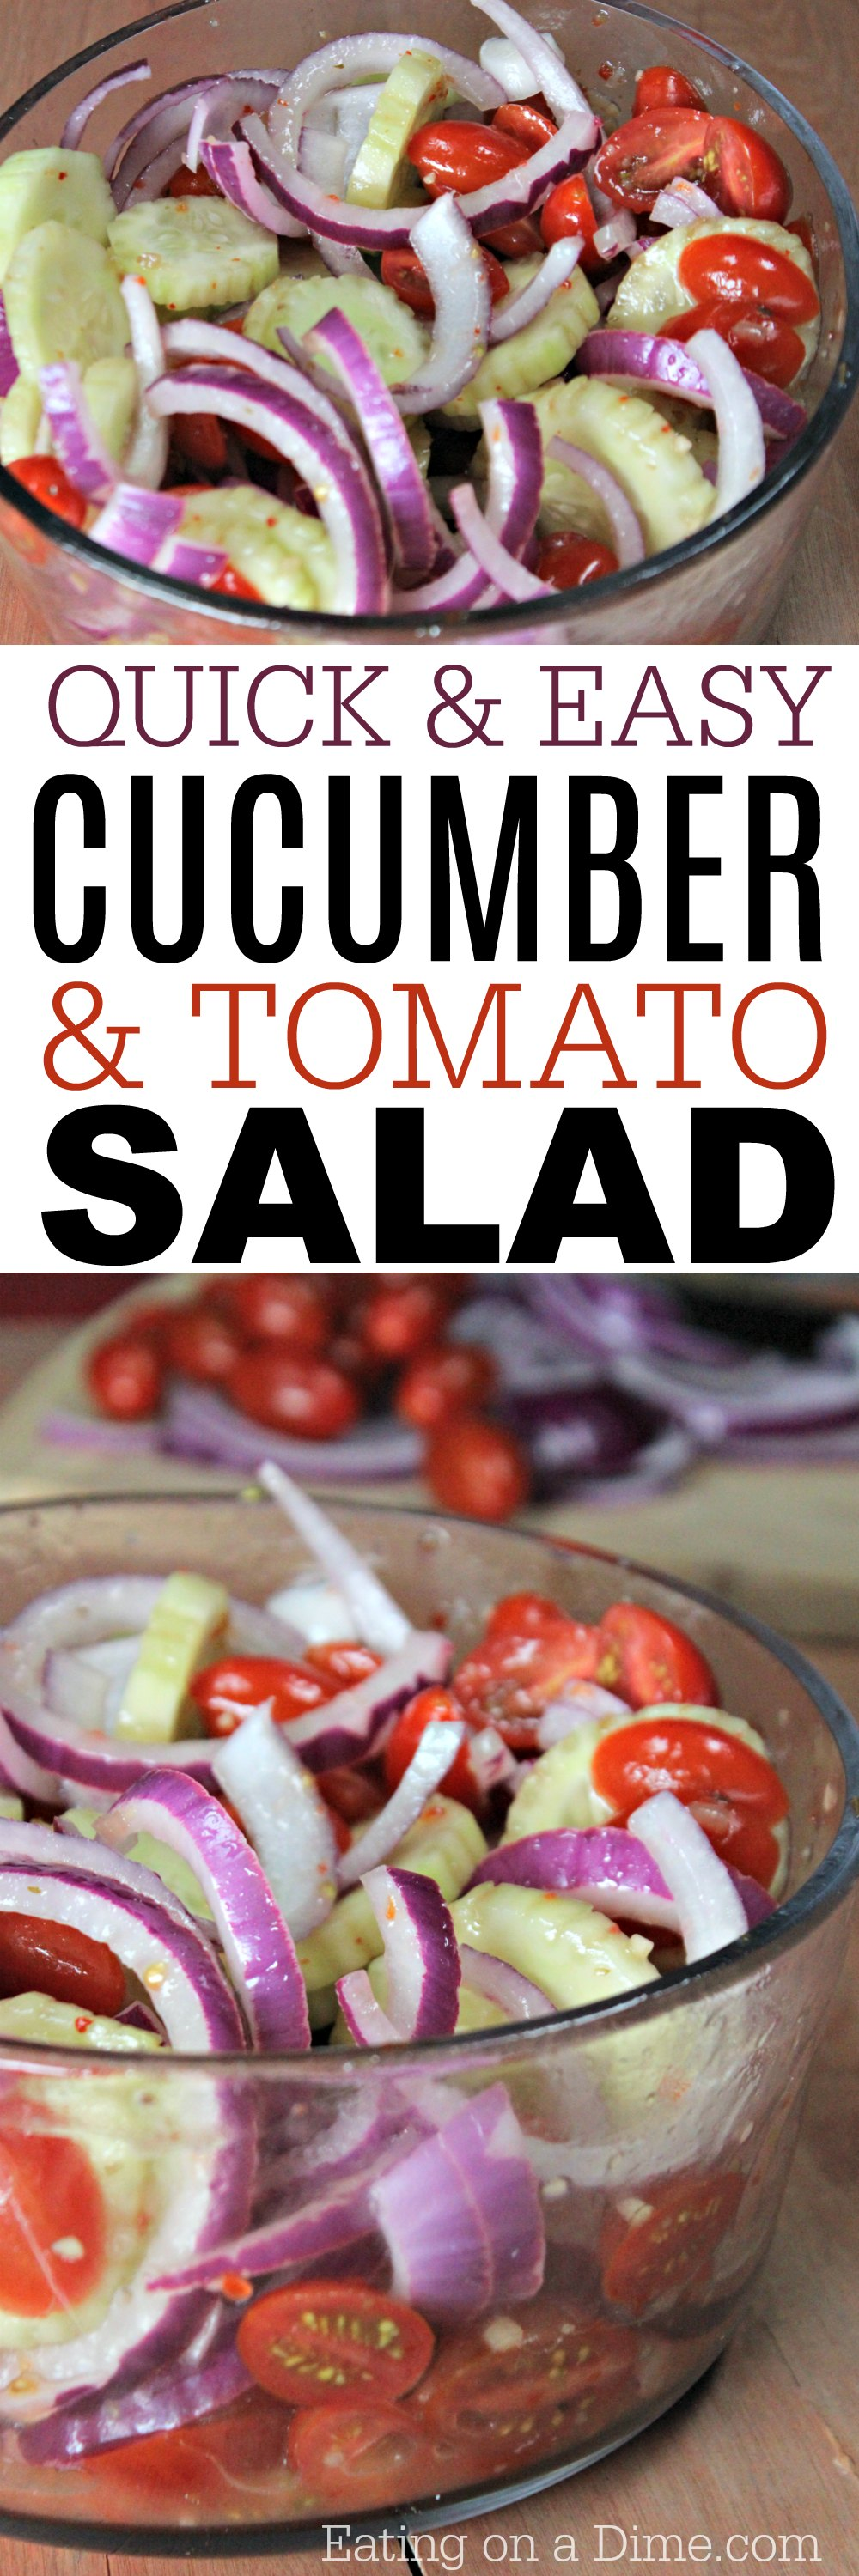 You are going to love this Cucumber Tomato Salad recipe. This quick and easy cucumber tomato onion salad recipe is perfect for a Summer salad recipe.